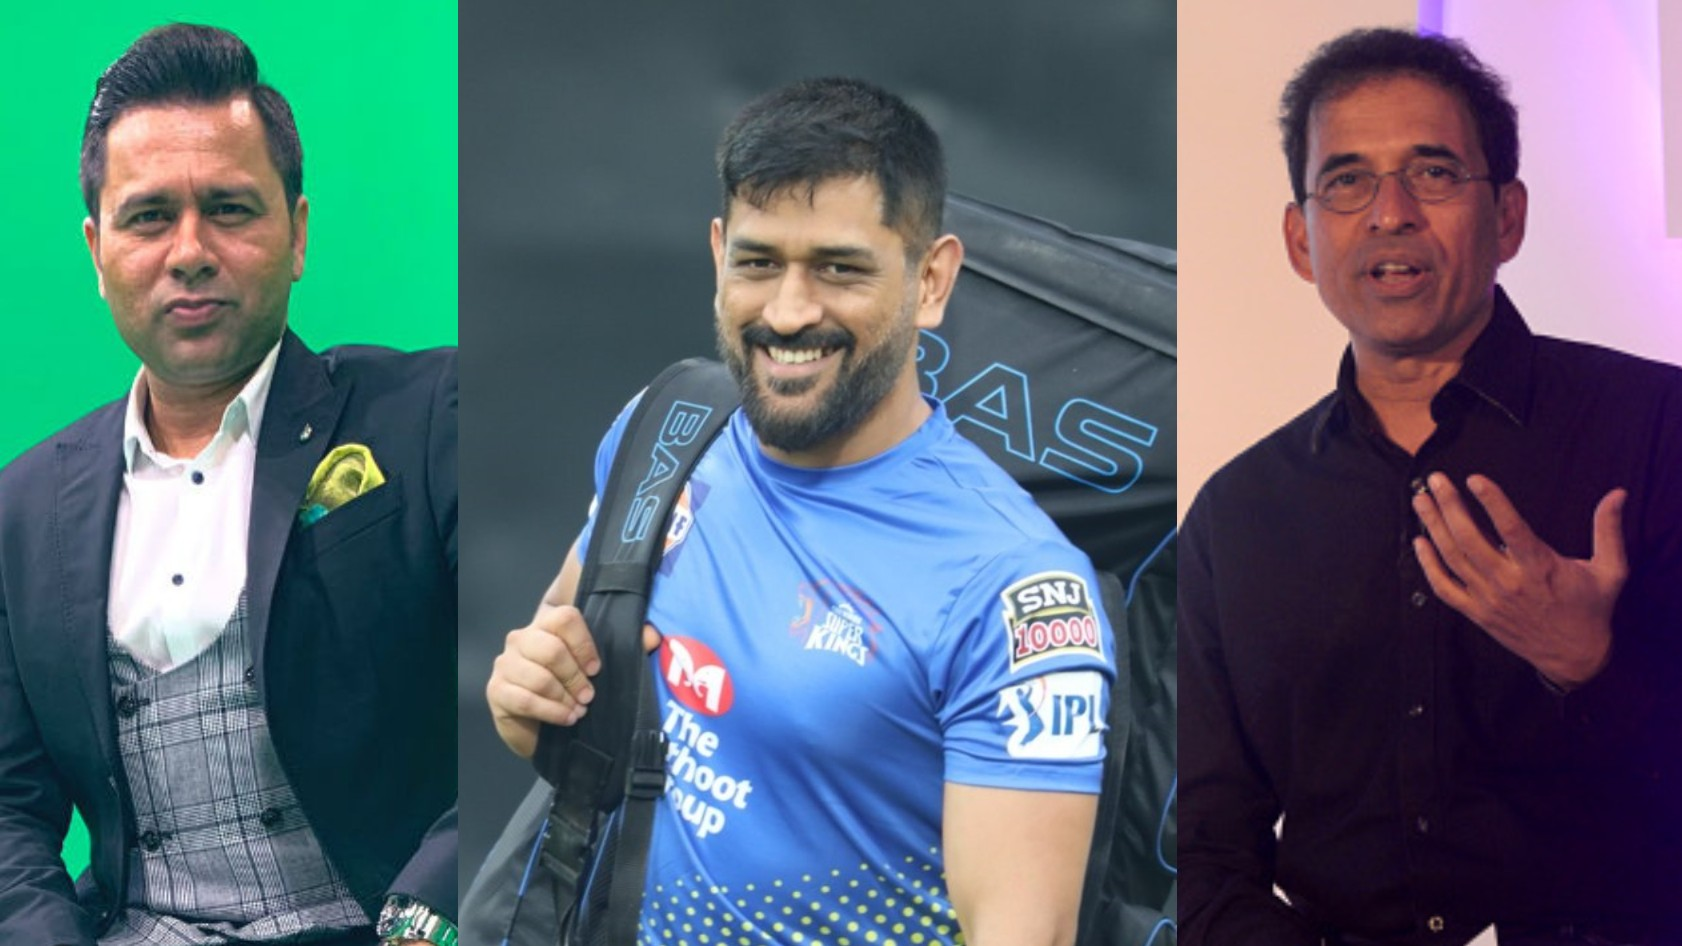 IPL 2020: 'Definitely Not' trends on Twitter after Dhoni dismisses retirement speculation; fraternity reacts